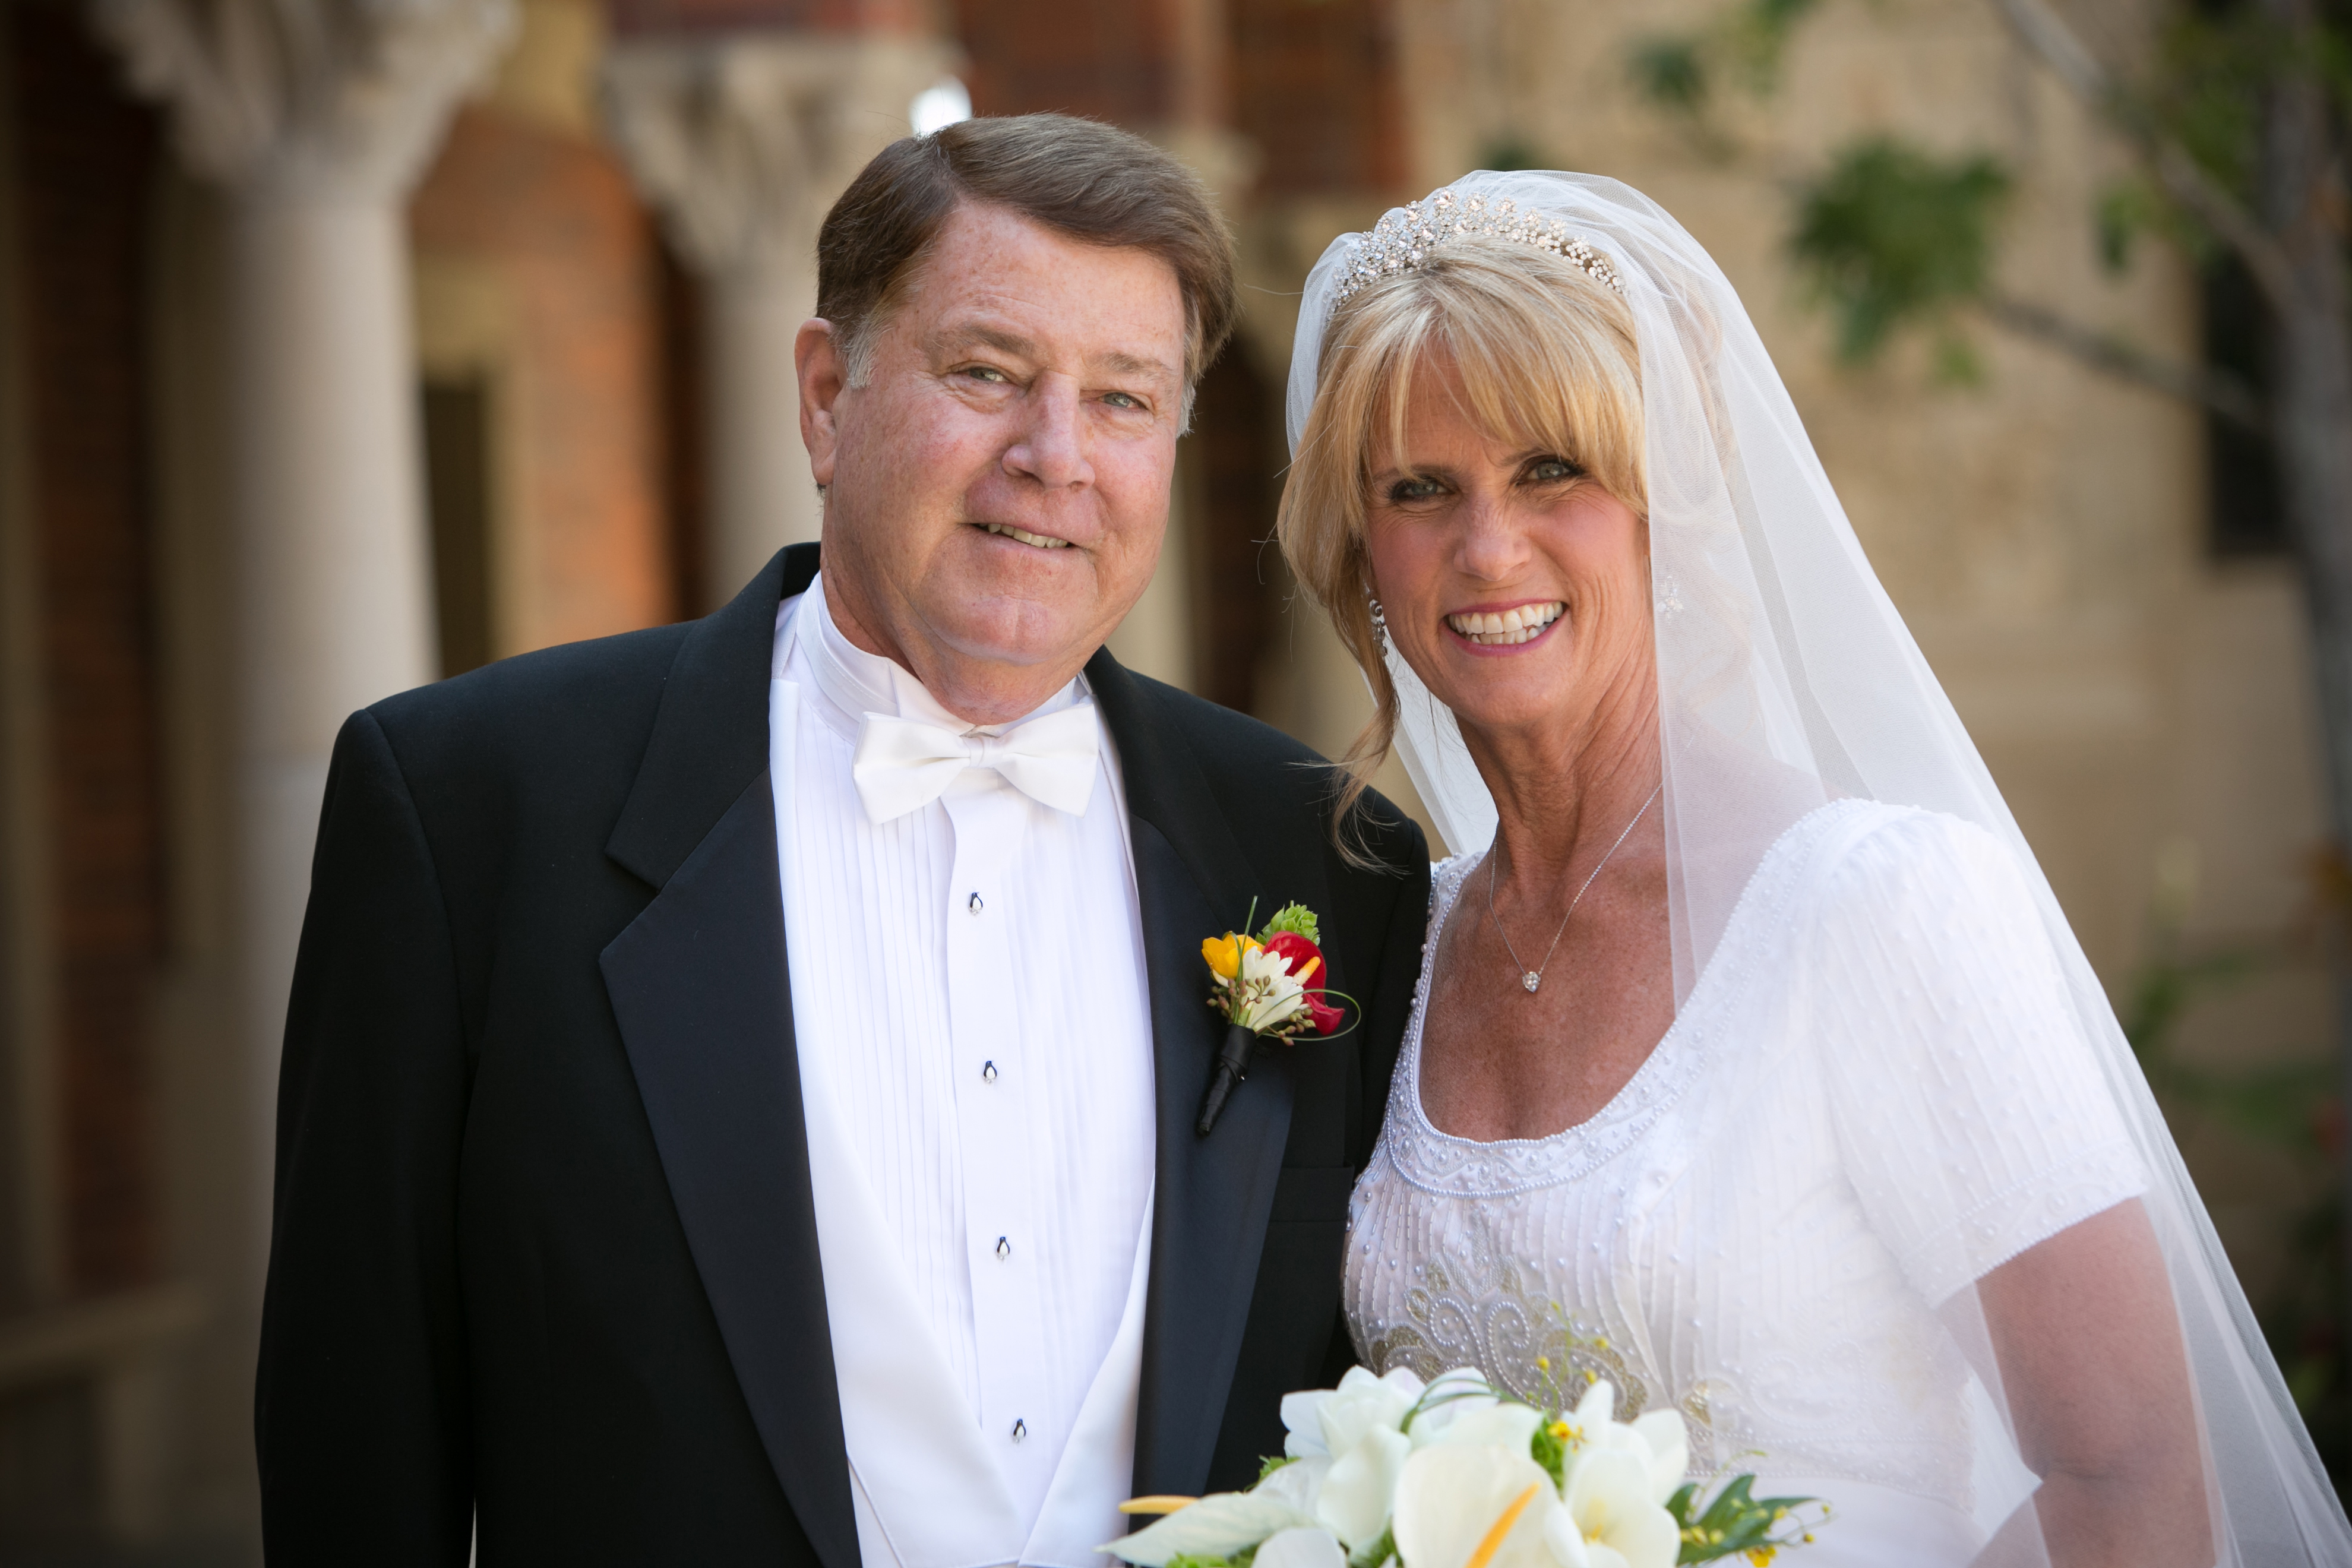 John and Karen Reid requested that in lieu of traditional gifts for their wedding, guests consider donations to the Darlene Dufau Reid Endowed Scholarship Fund. (Photo/David Michael Photography)